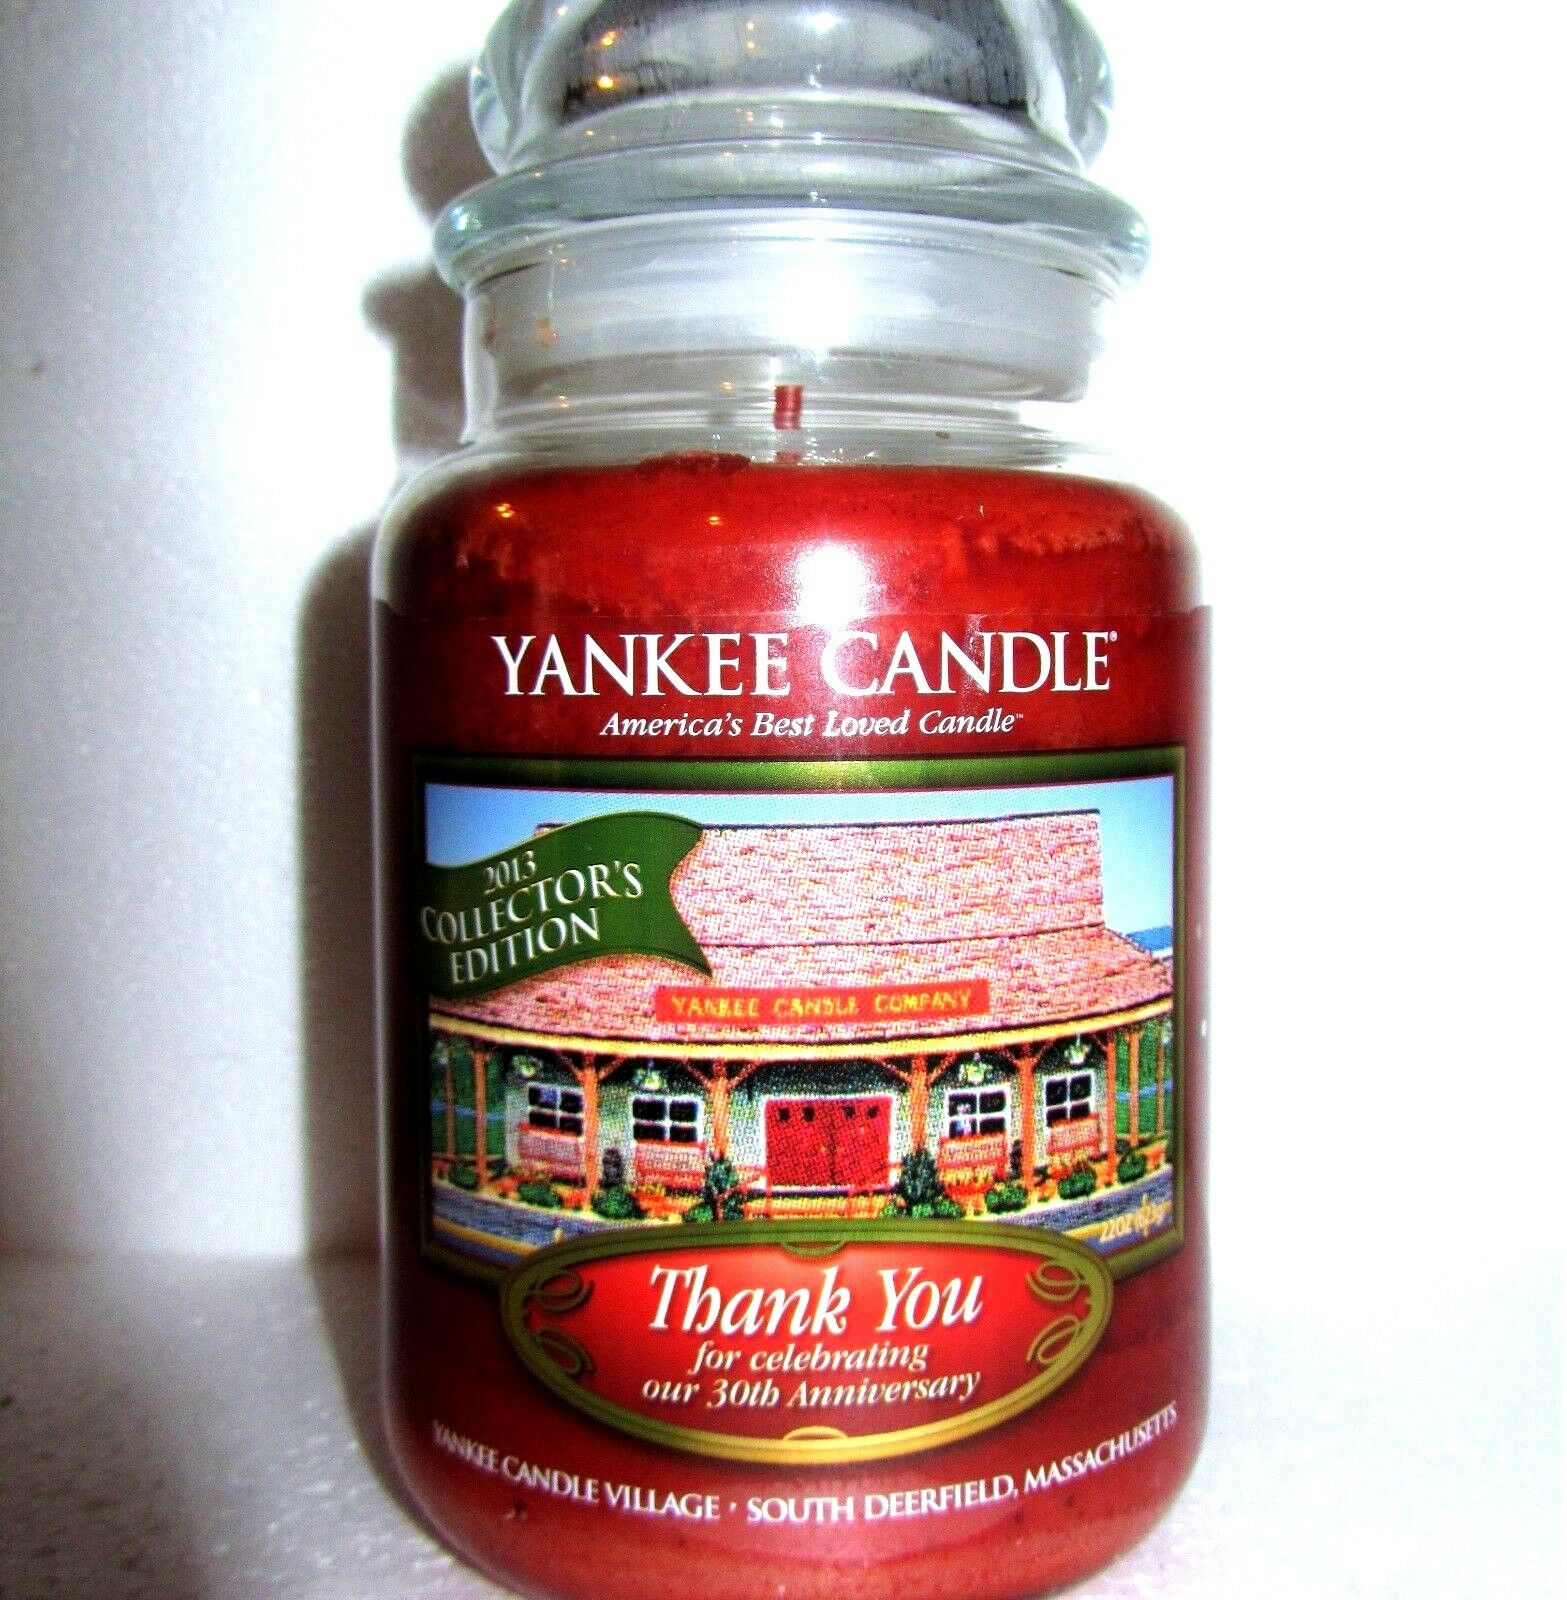 Yankee Candle THANK YOU Be ThankfulDeerfield30th AnniversaryLarge 22 ozRARE